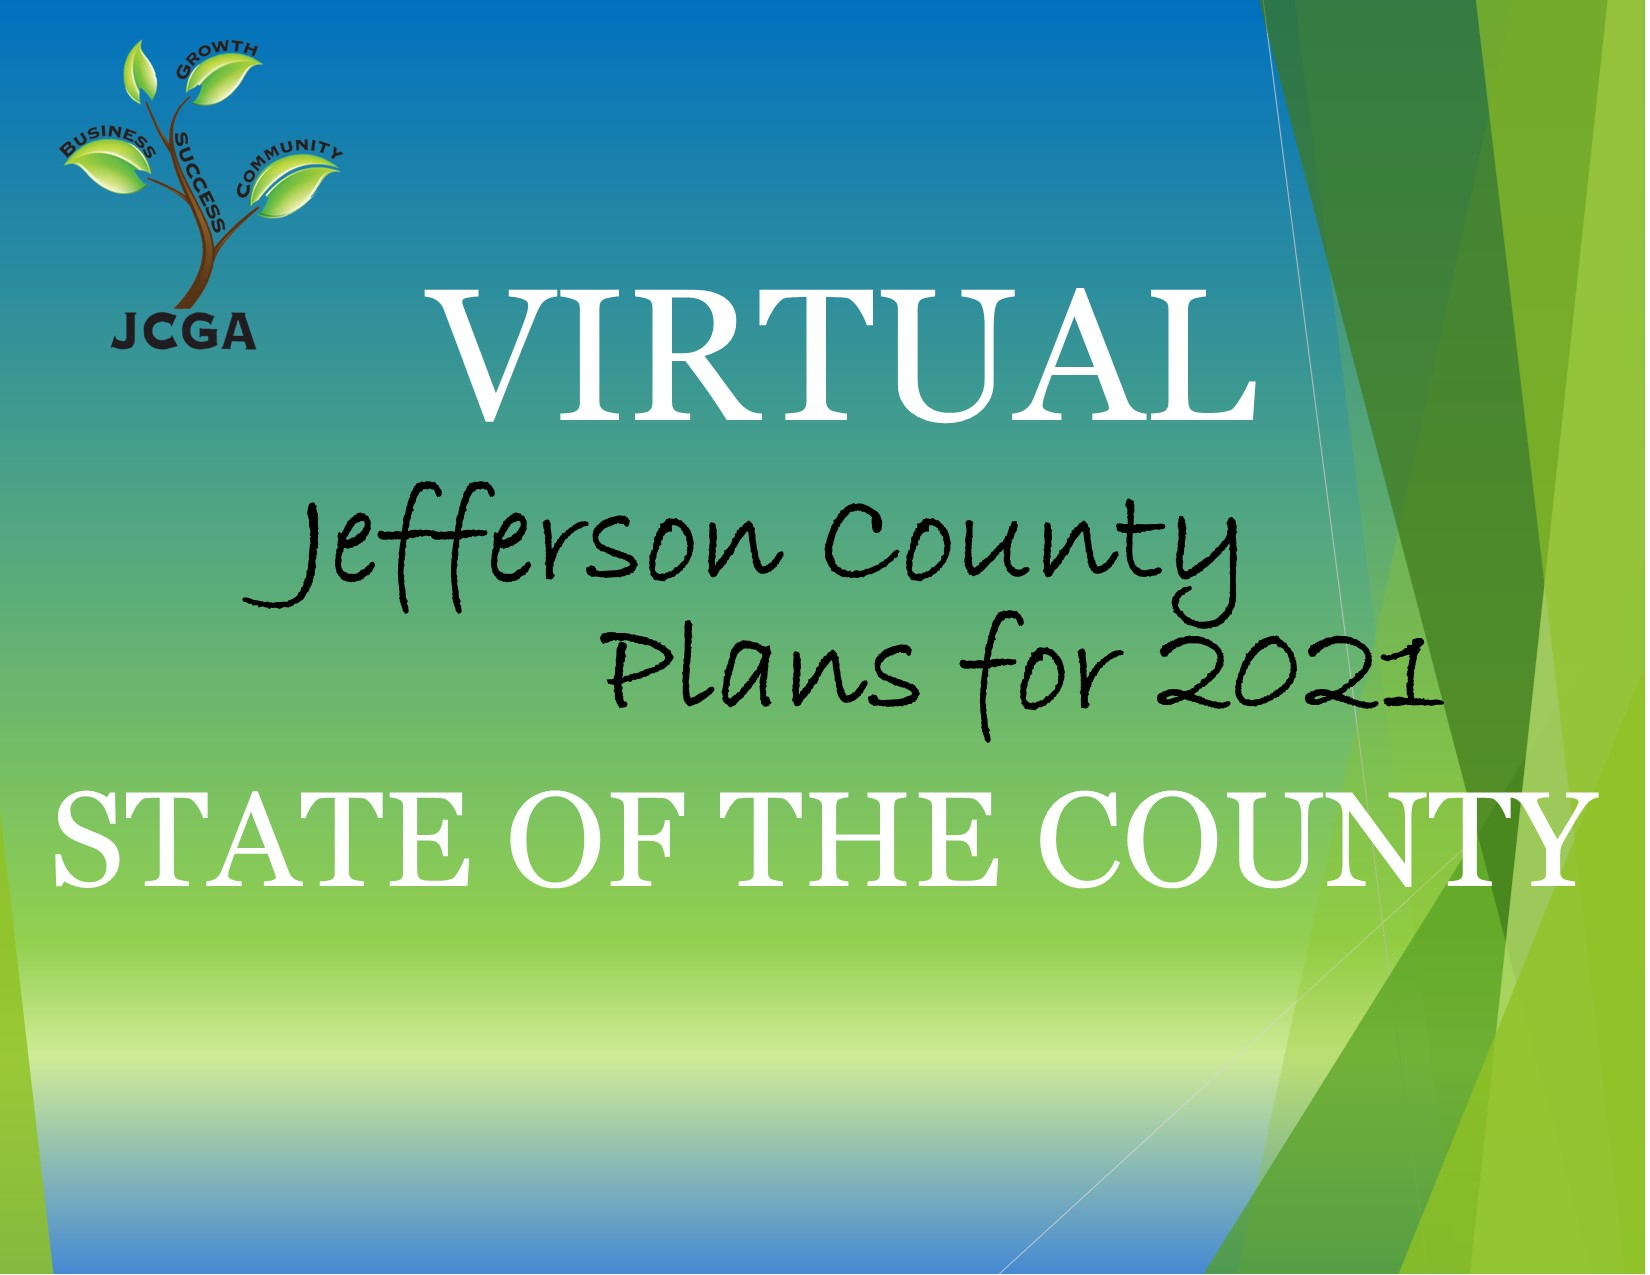 Jefferson County Plans for 2021